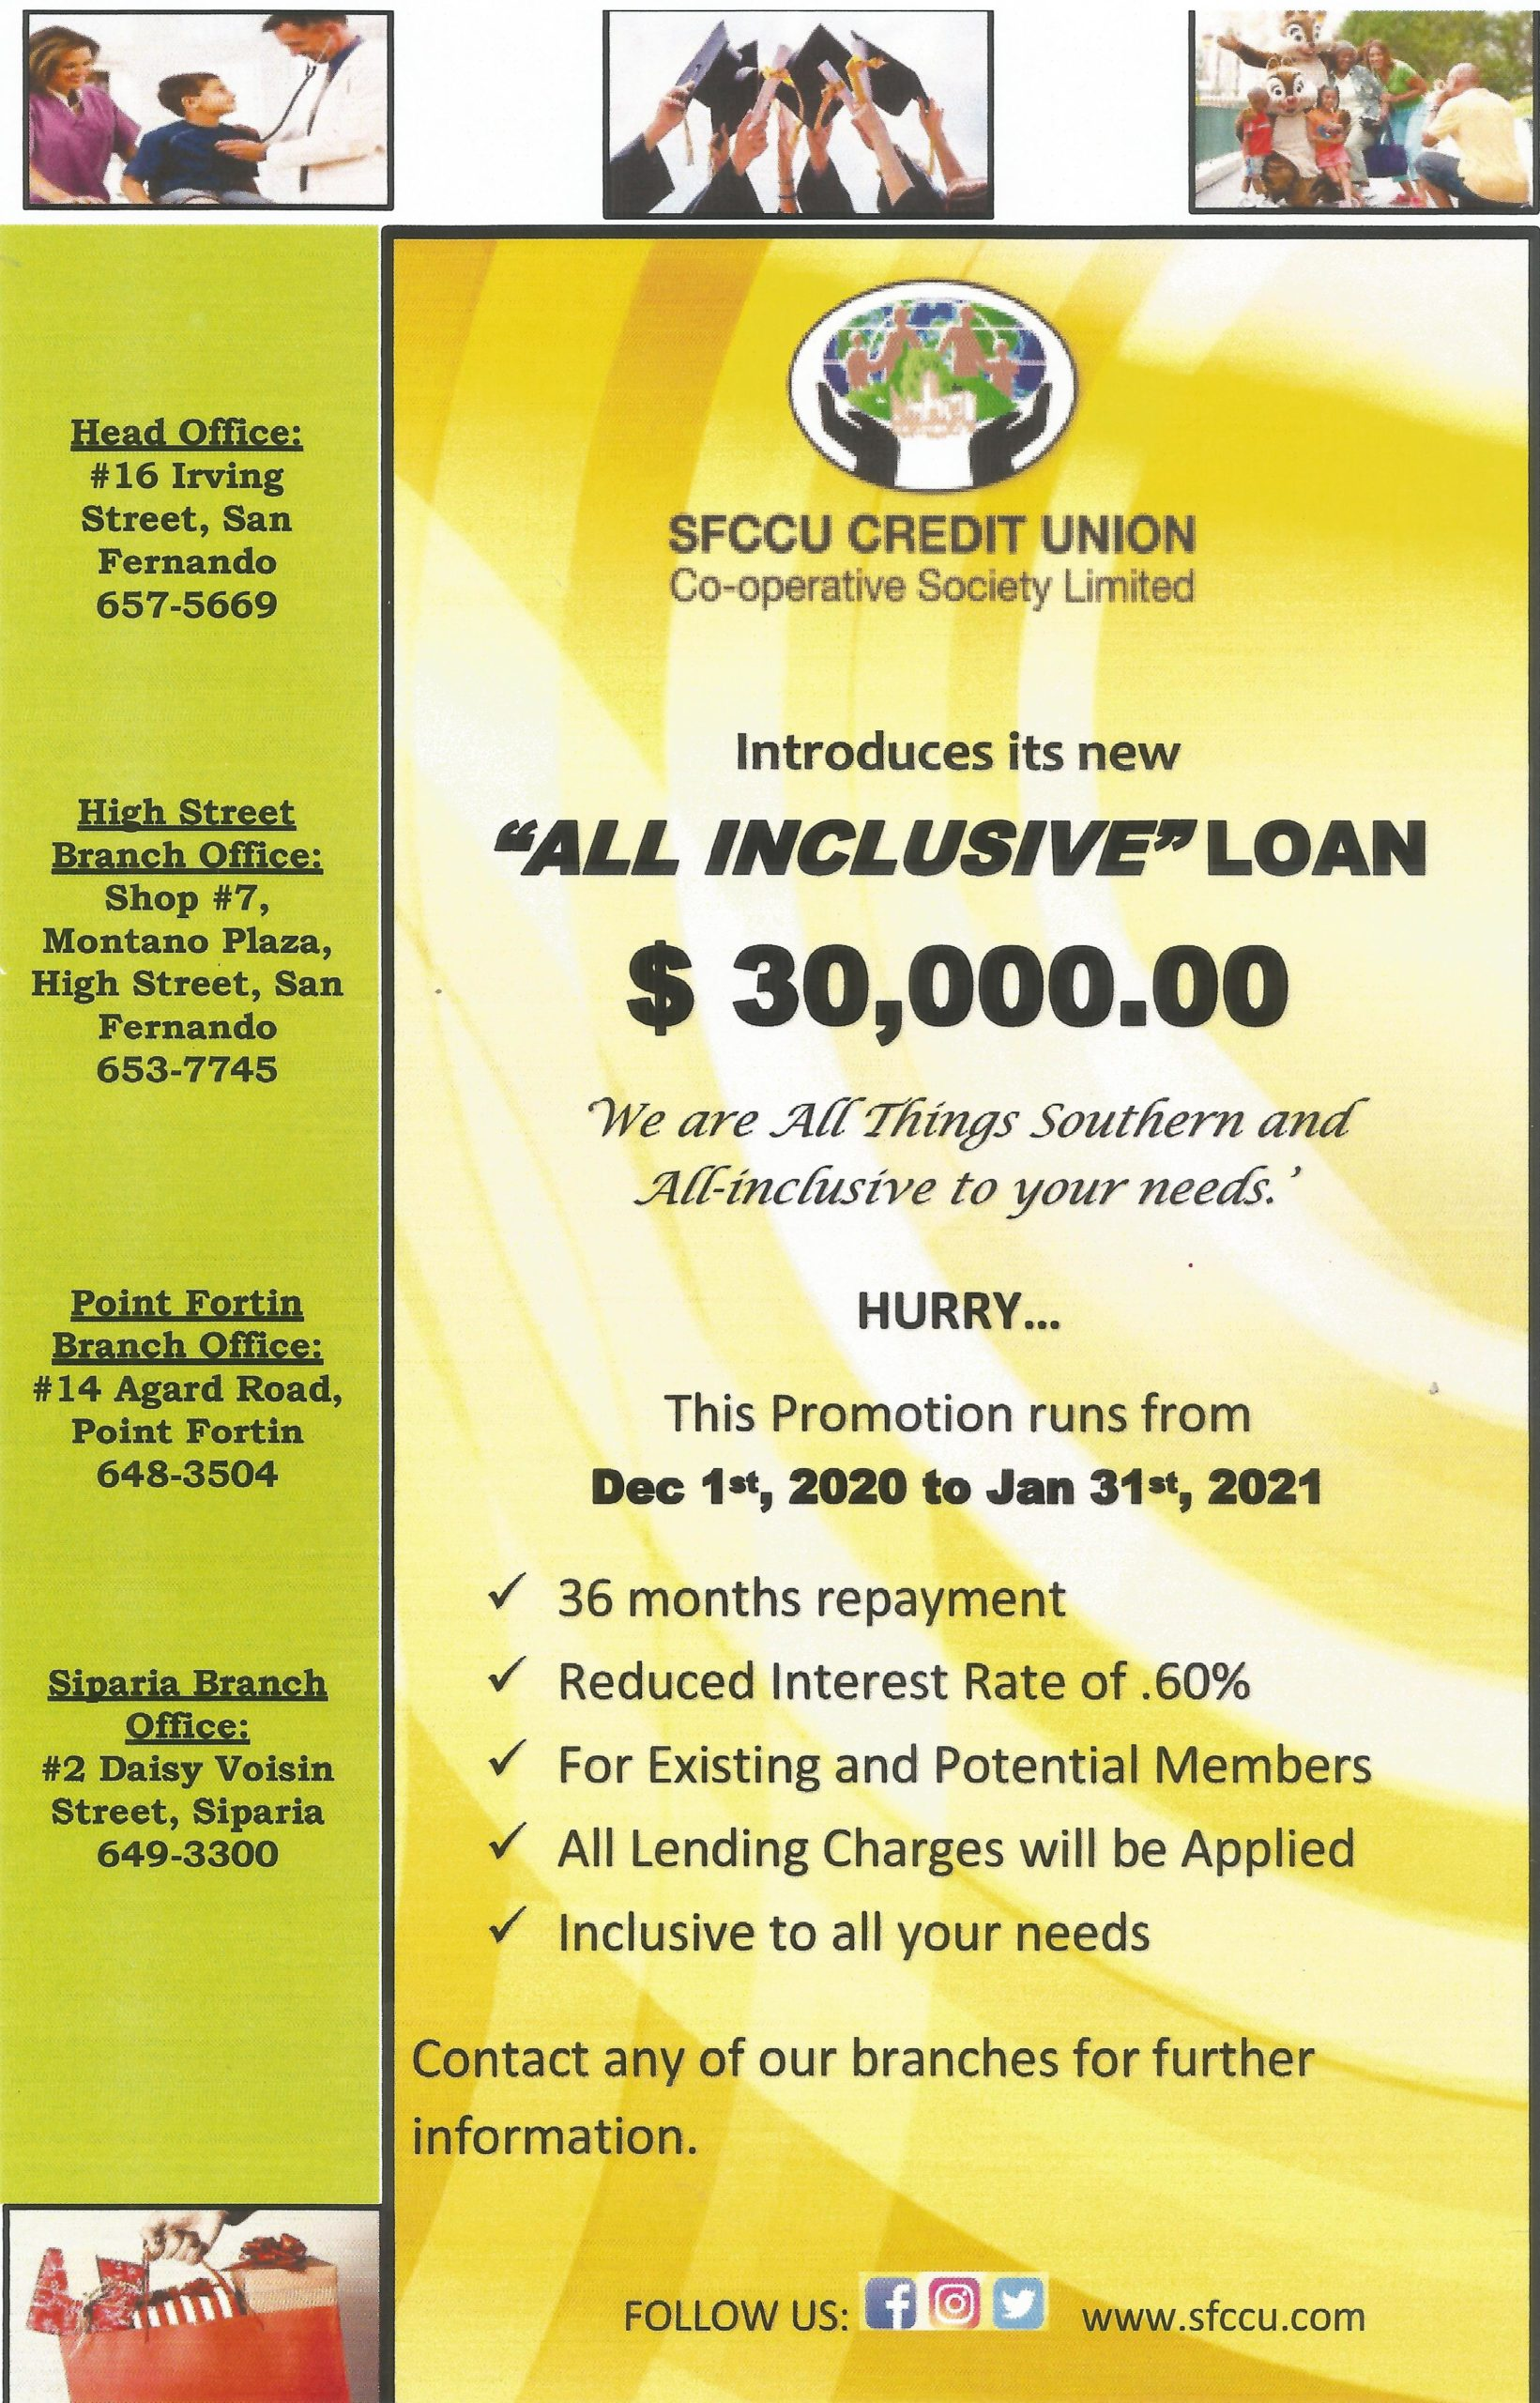 All inclusive loan flyer jpeg